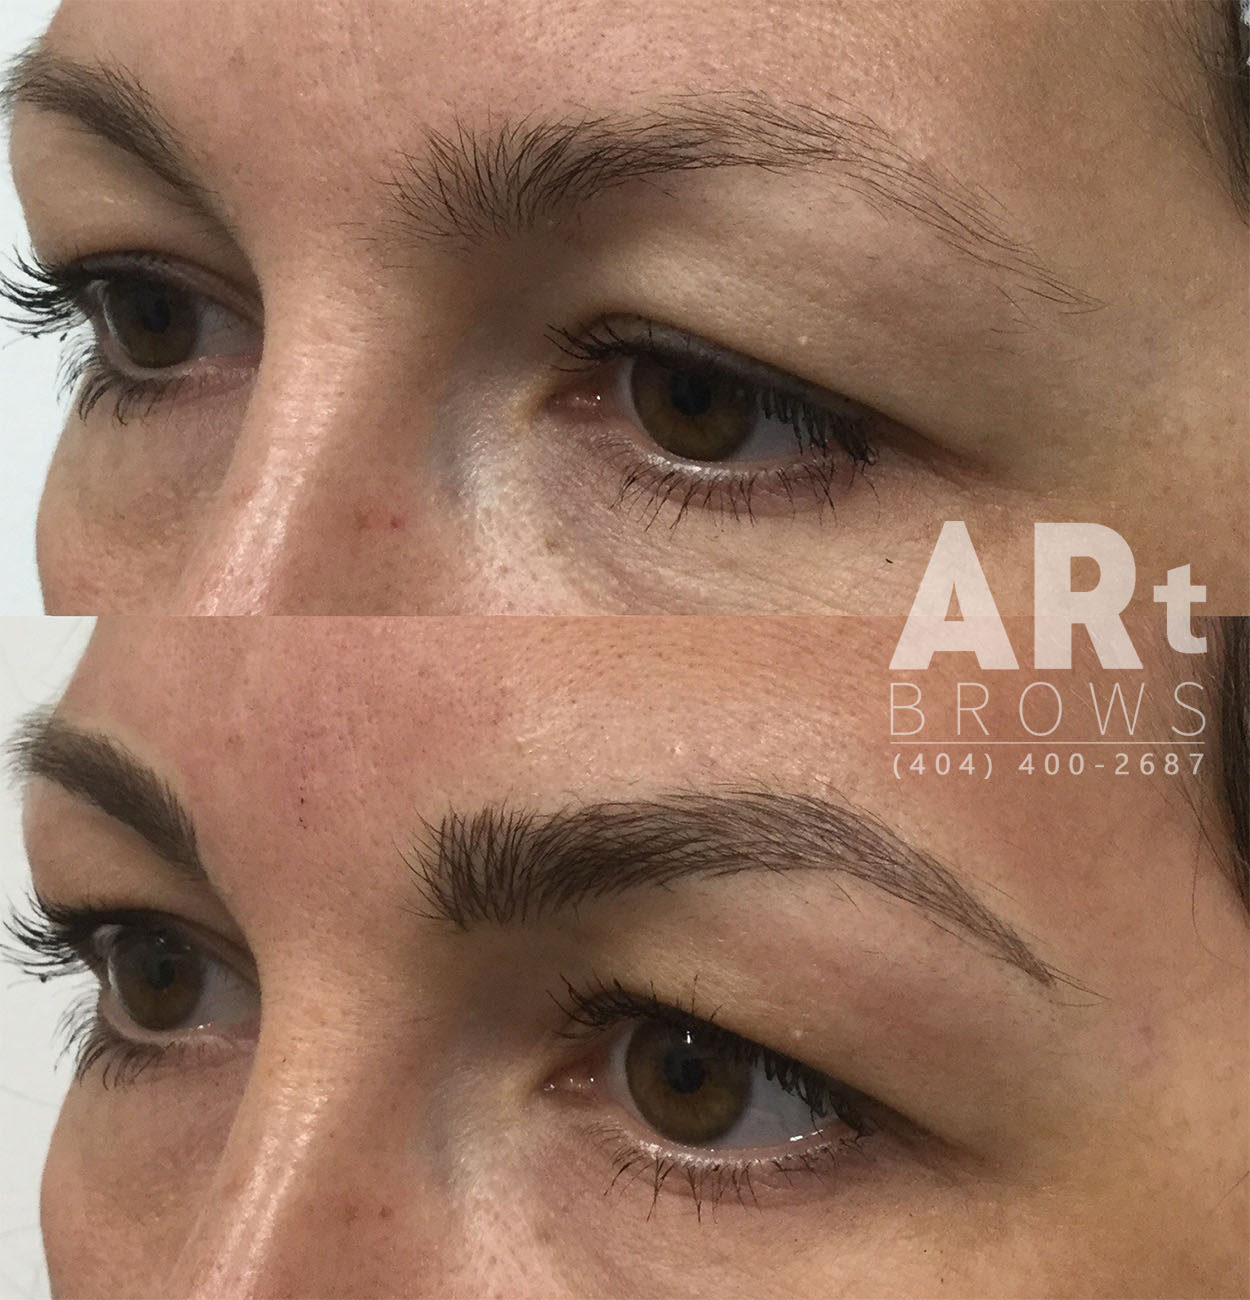 art brows before and after 3d eyebrows